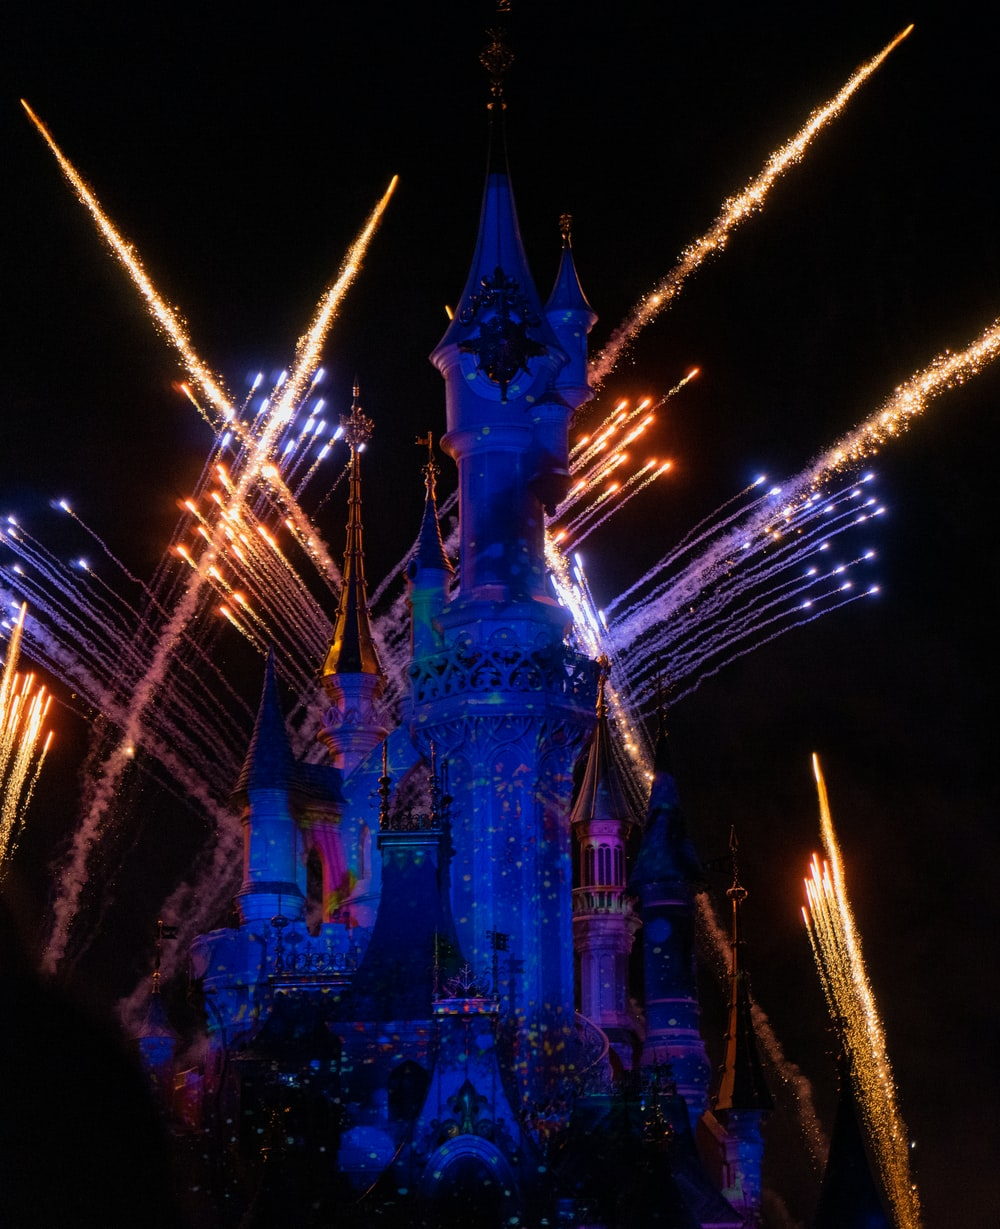 time-lapse photography of fireworks shooting above Disneyland castle